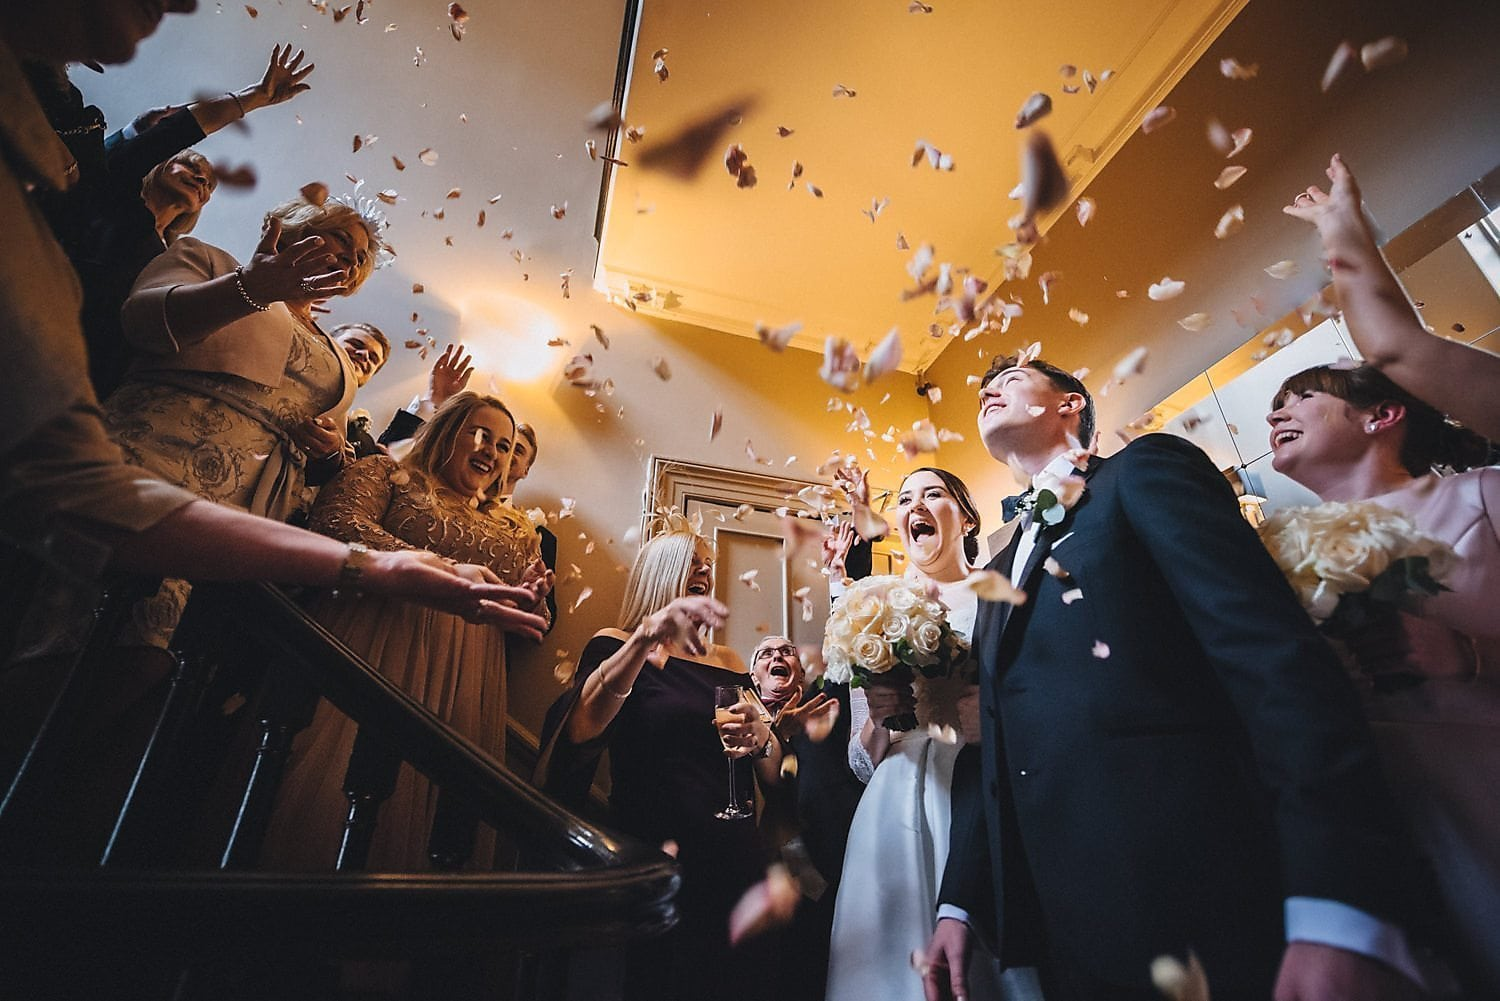 A confetti shot taken by the staircase of the Bingham Hotel.